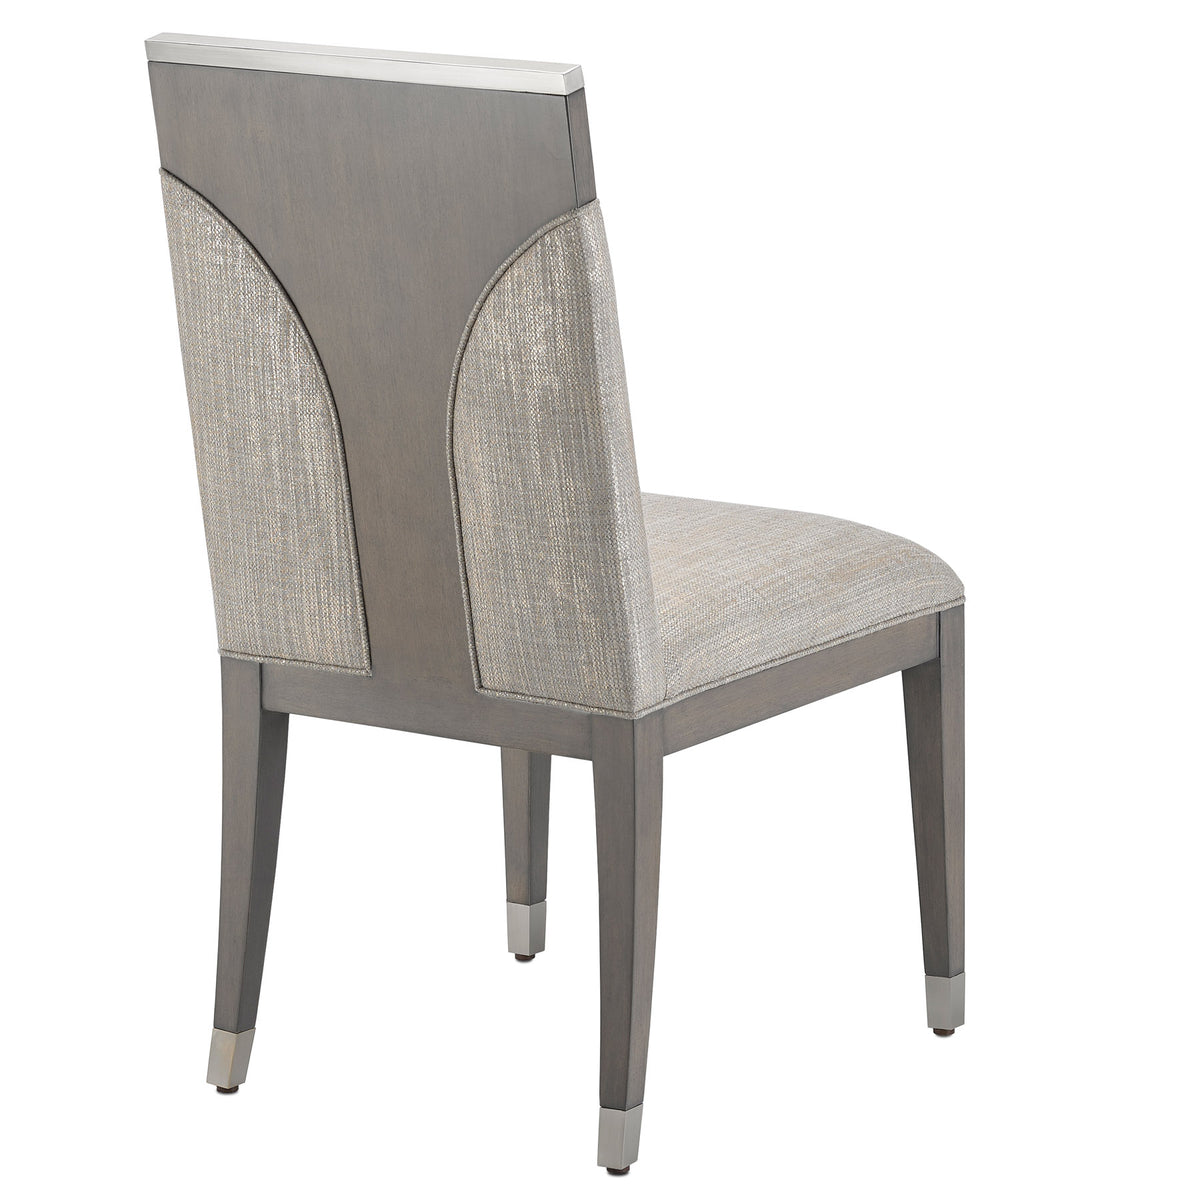 Mirra Stone Chair